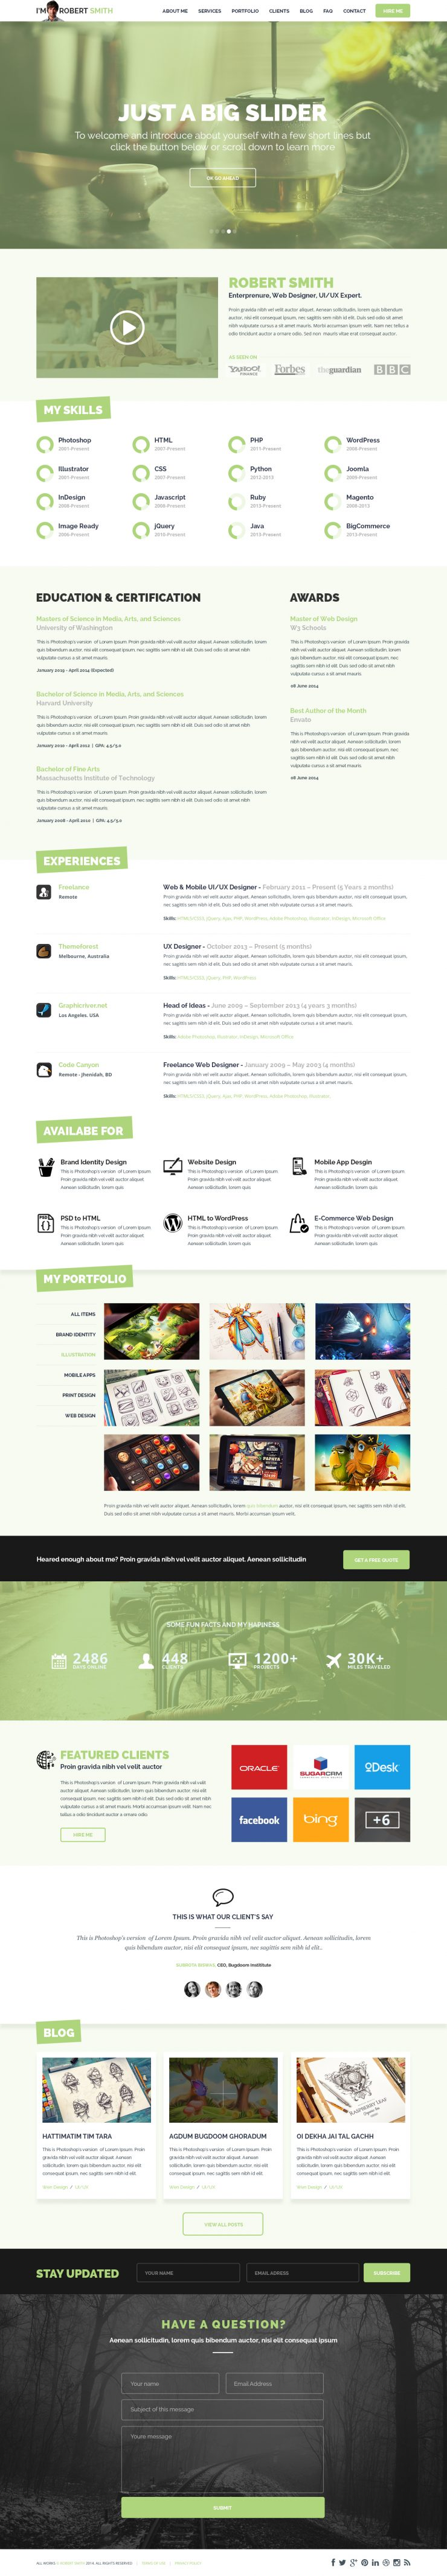 one page resume website template psd download